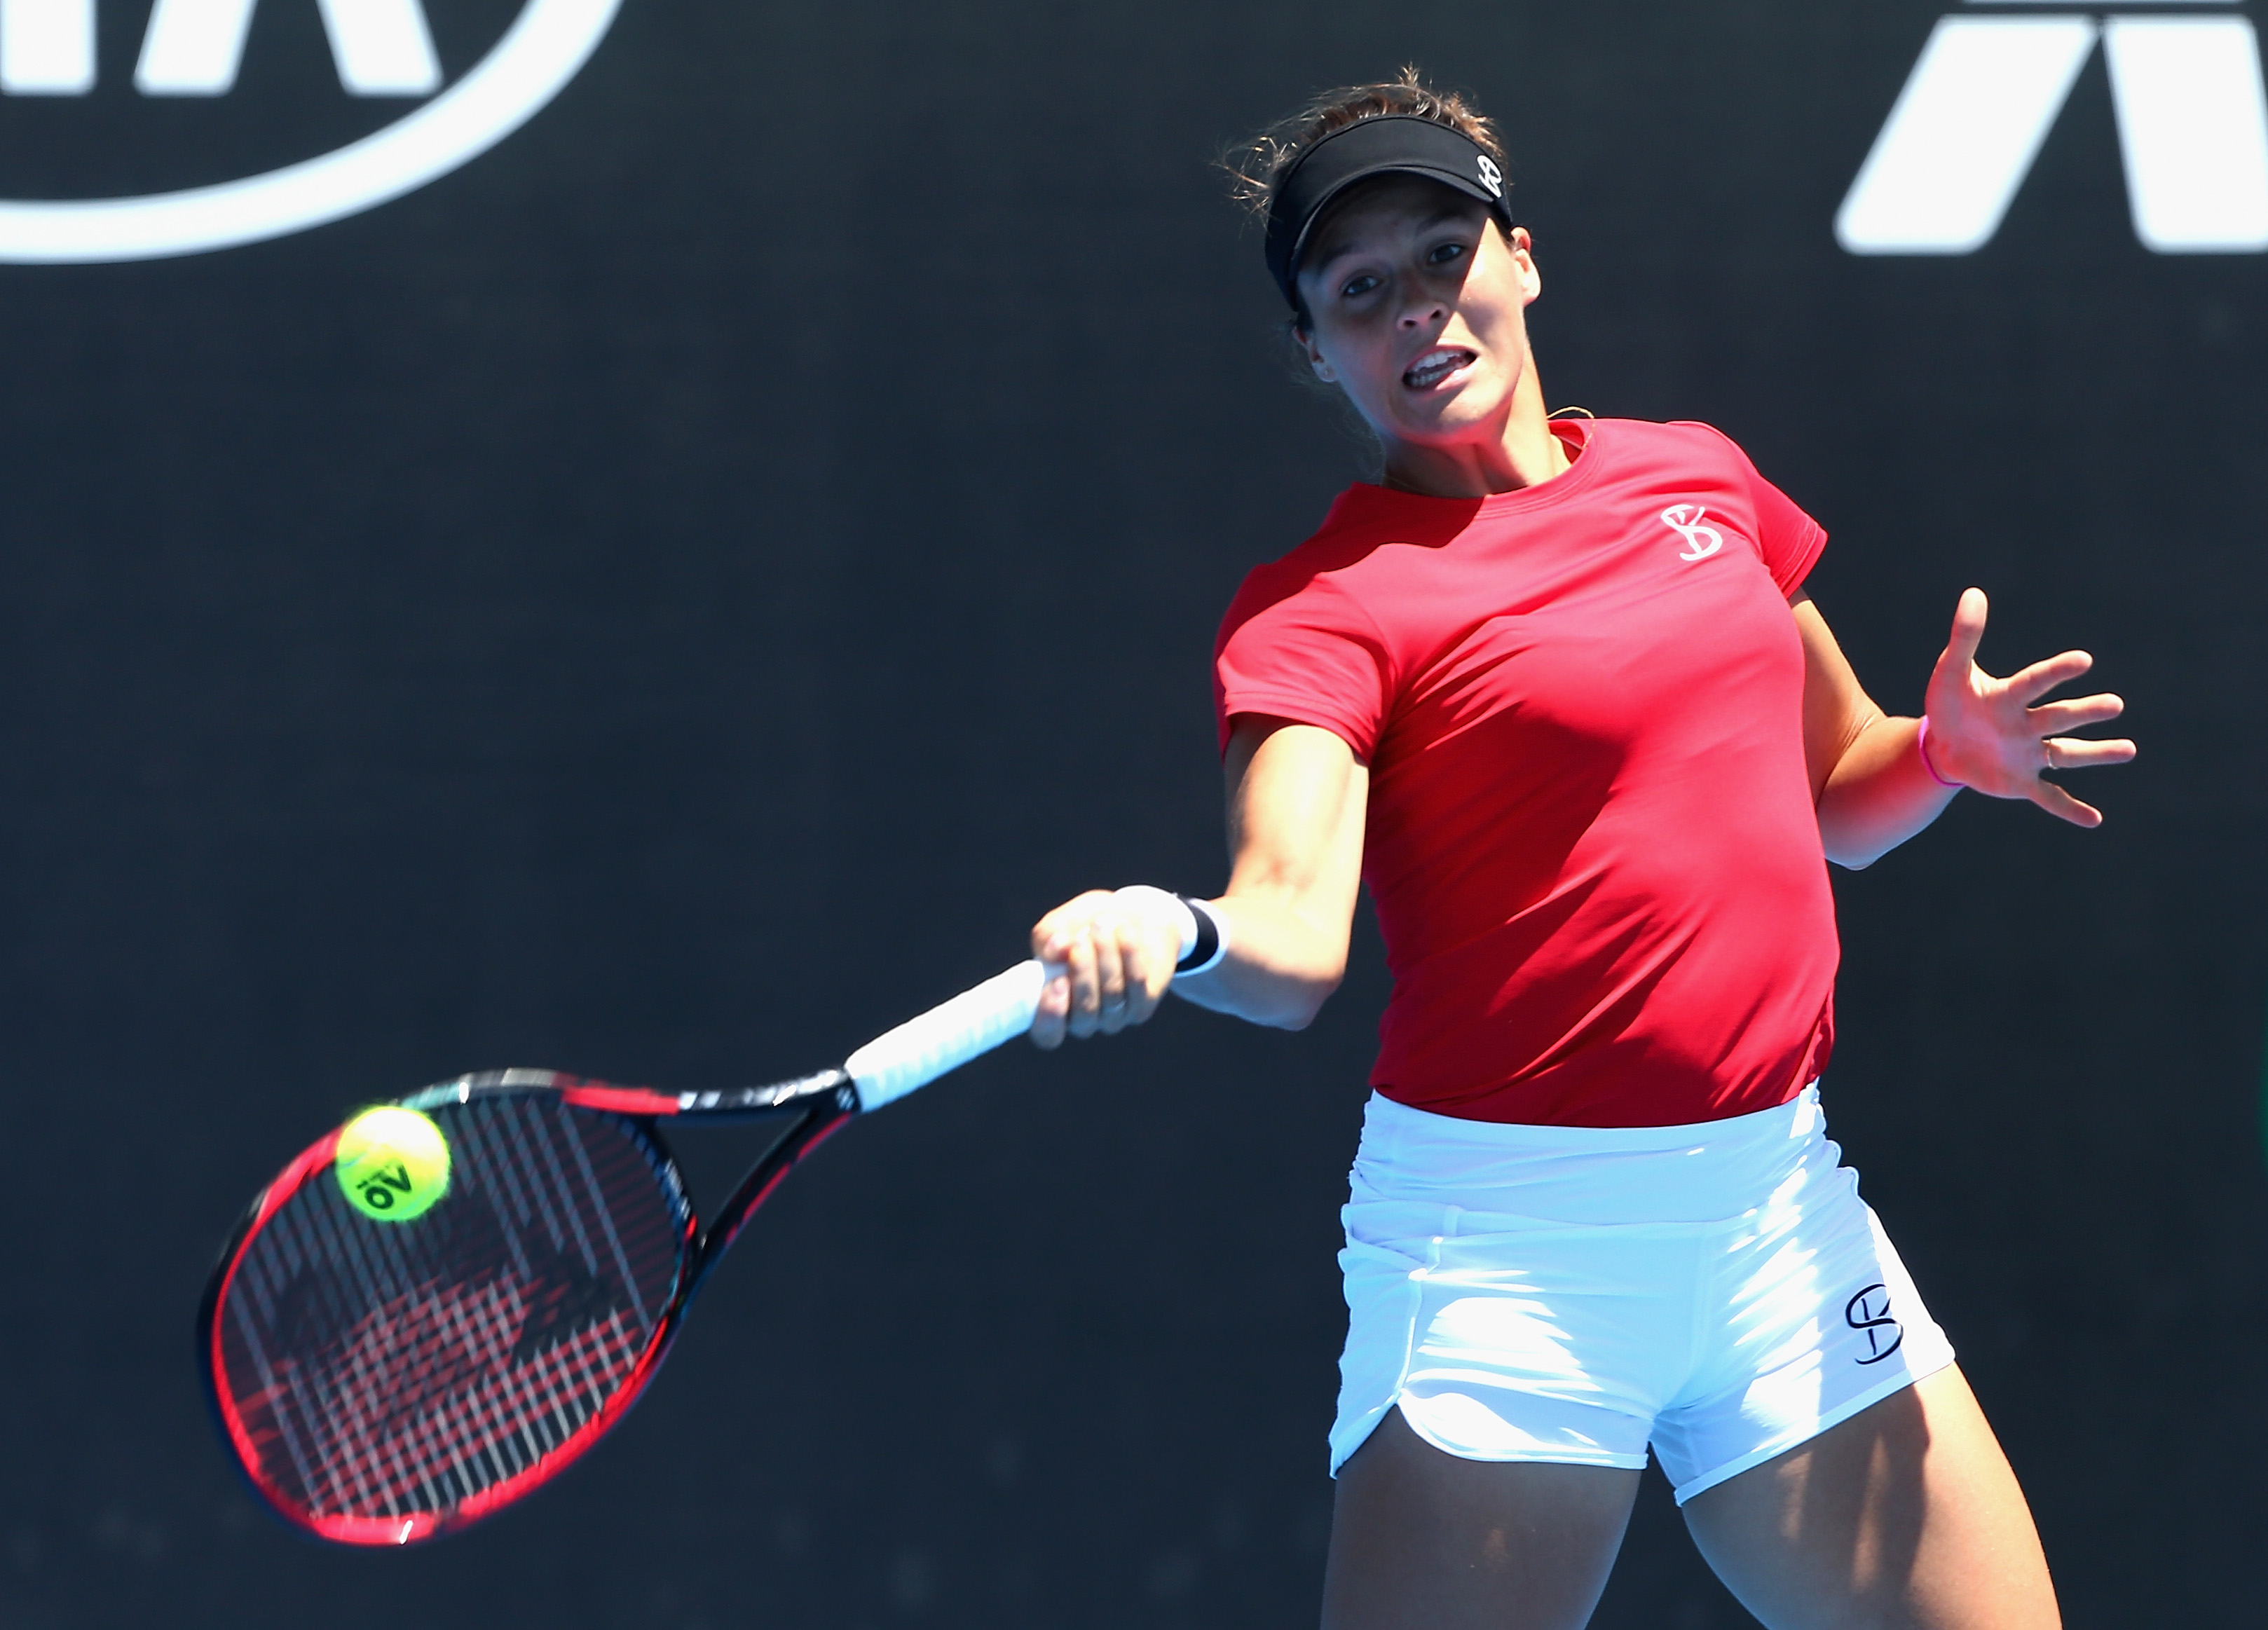 MELBOURNE, AUSTRALIA - JANUARY 12: Tatjana Maria of Germany plays a forehand in her 2017 Australian Open Qualifying match against Ksenia Pervak of Russia at Melbourne Park on January 12, 2017 in Melbourne, Australia. (Photo by Robert Prezioso/Getty Images)